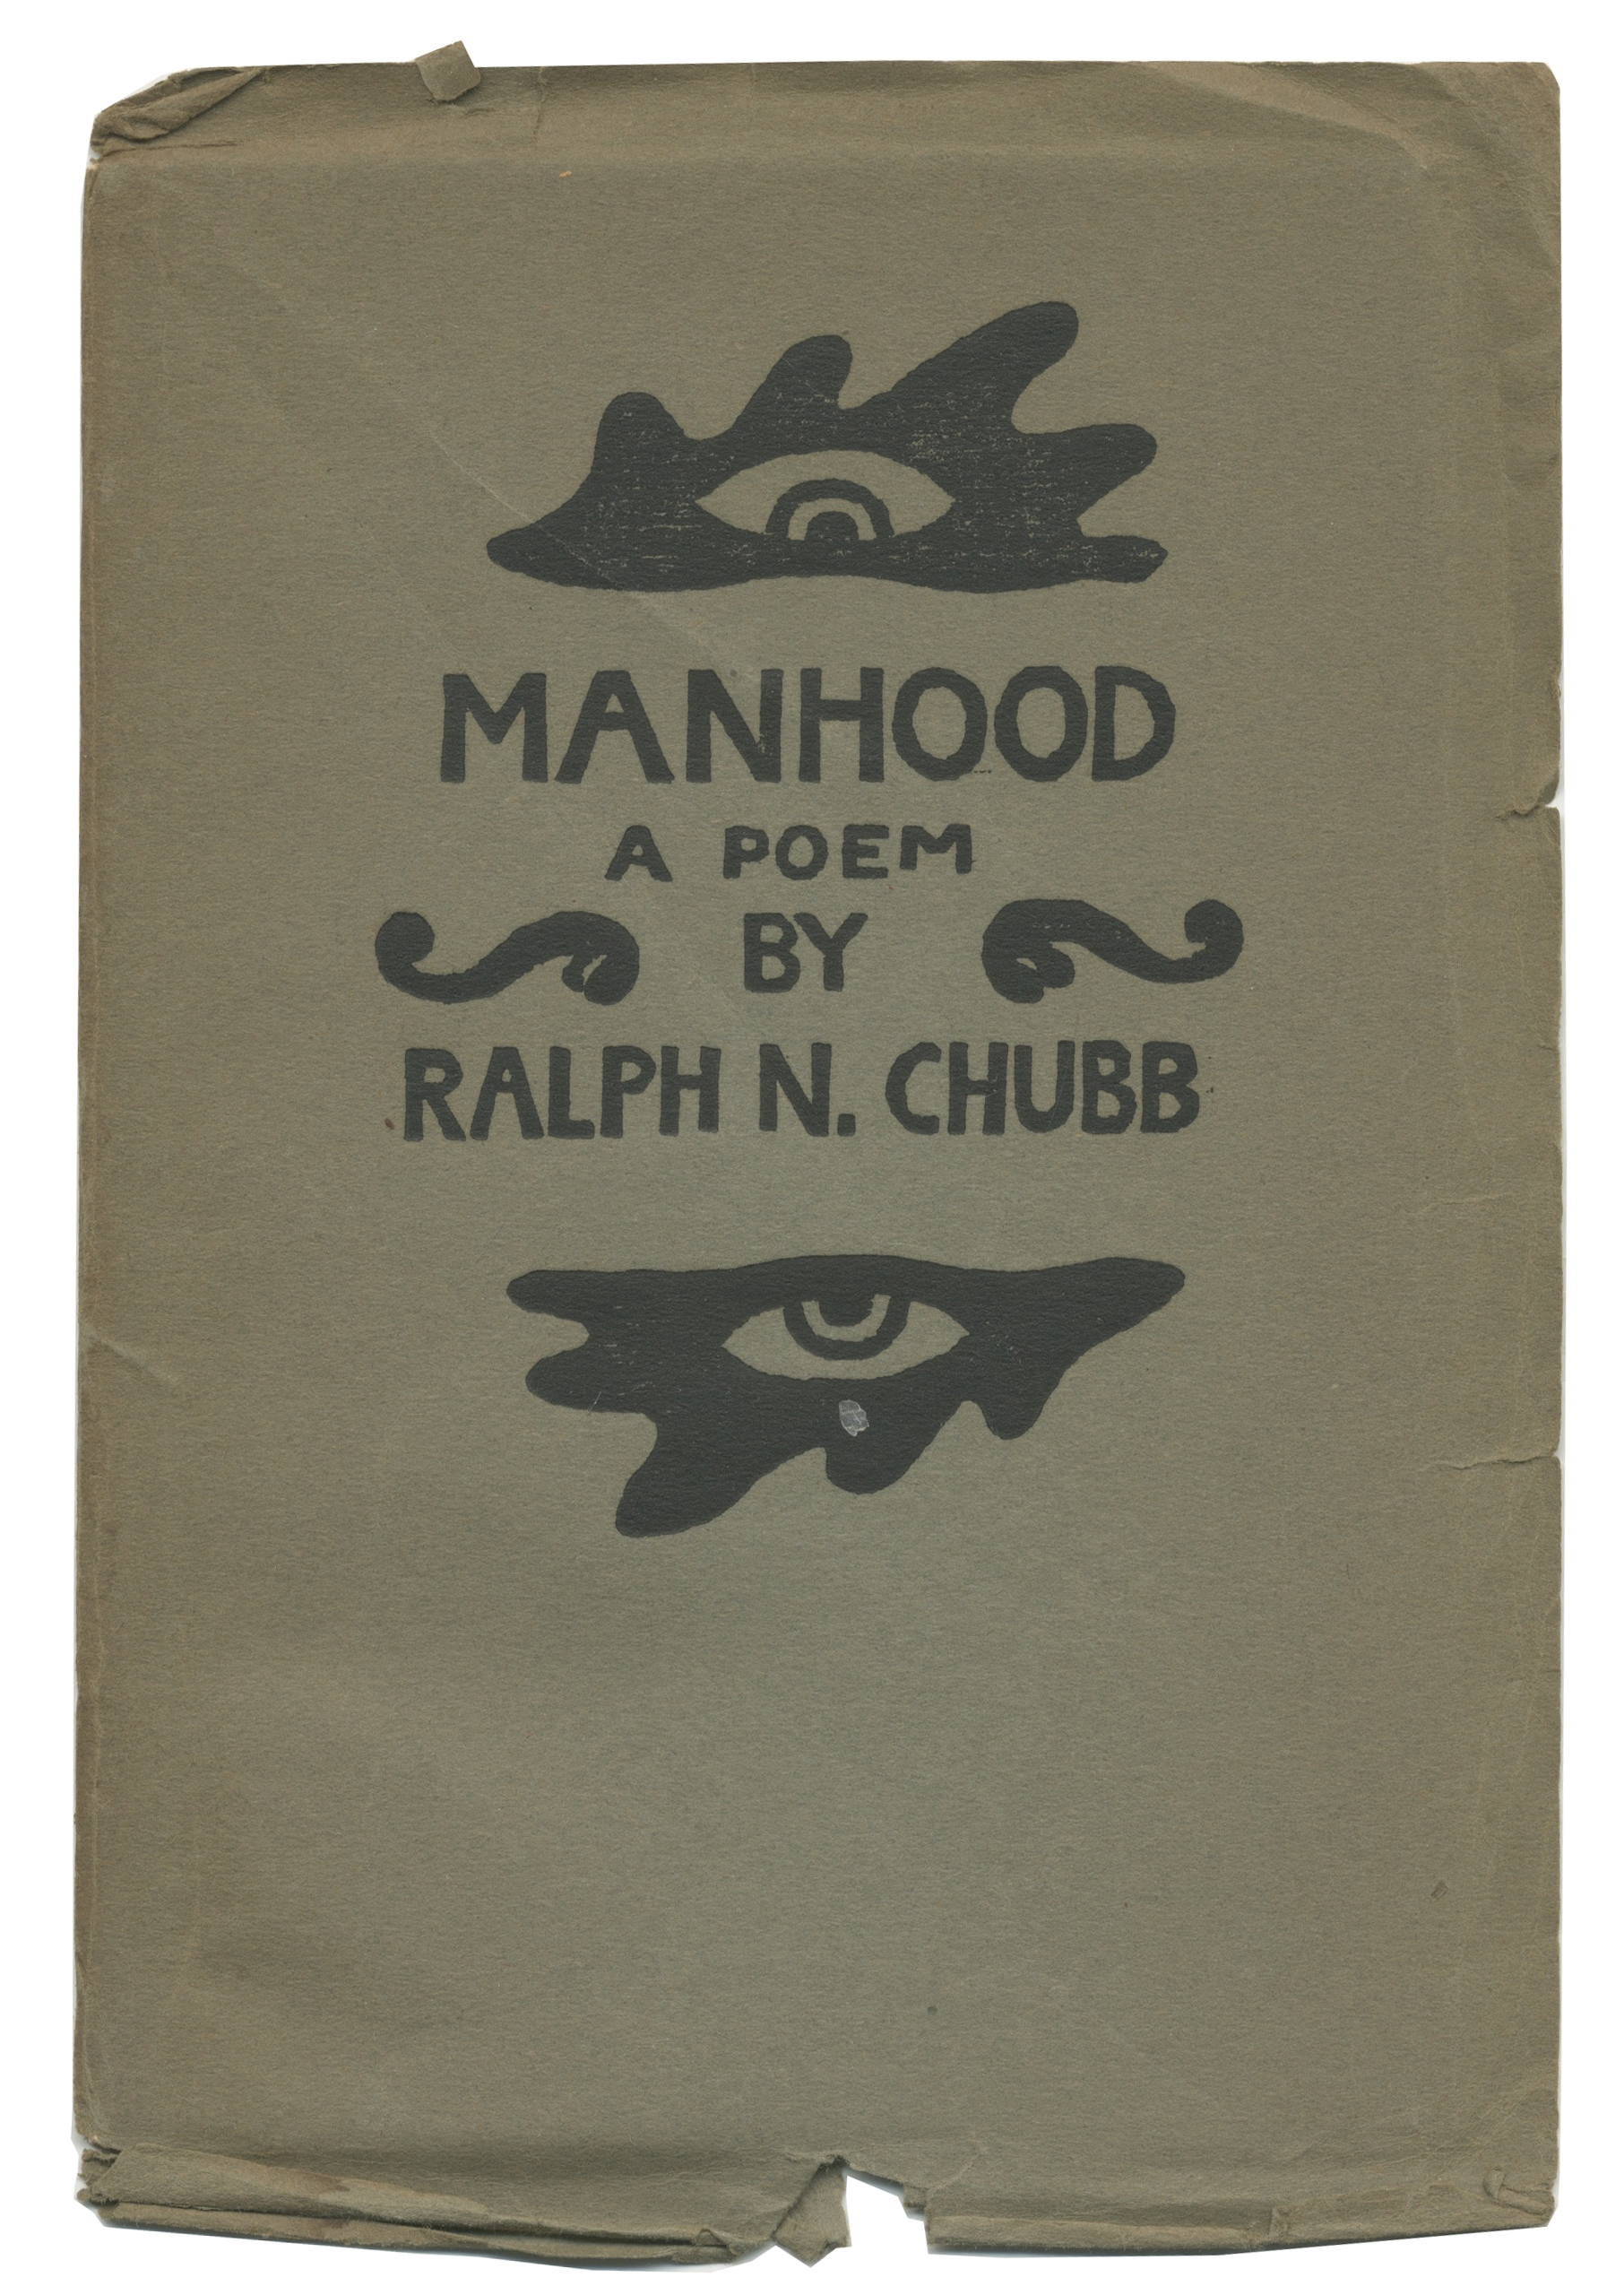 CHUBB (RALPH N.) Manhood, a Poem... Designed and Engraved by the Author, 1924; and 2 other limite...